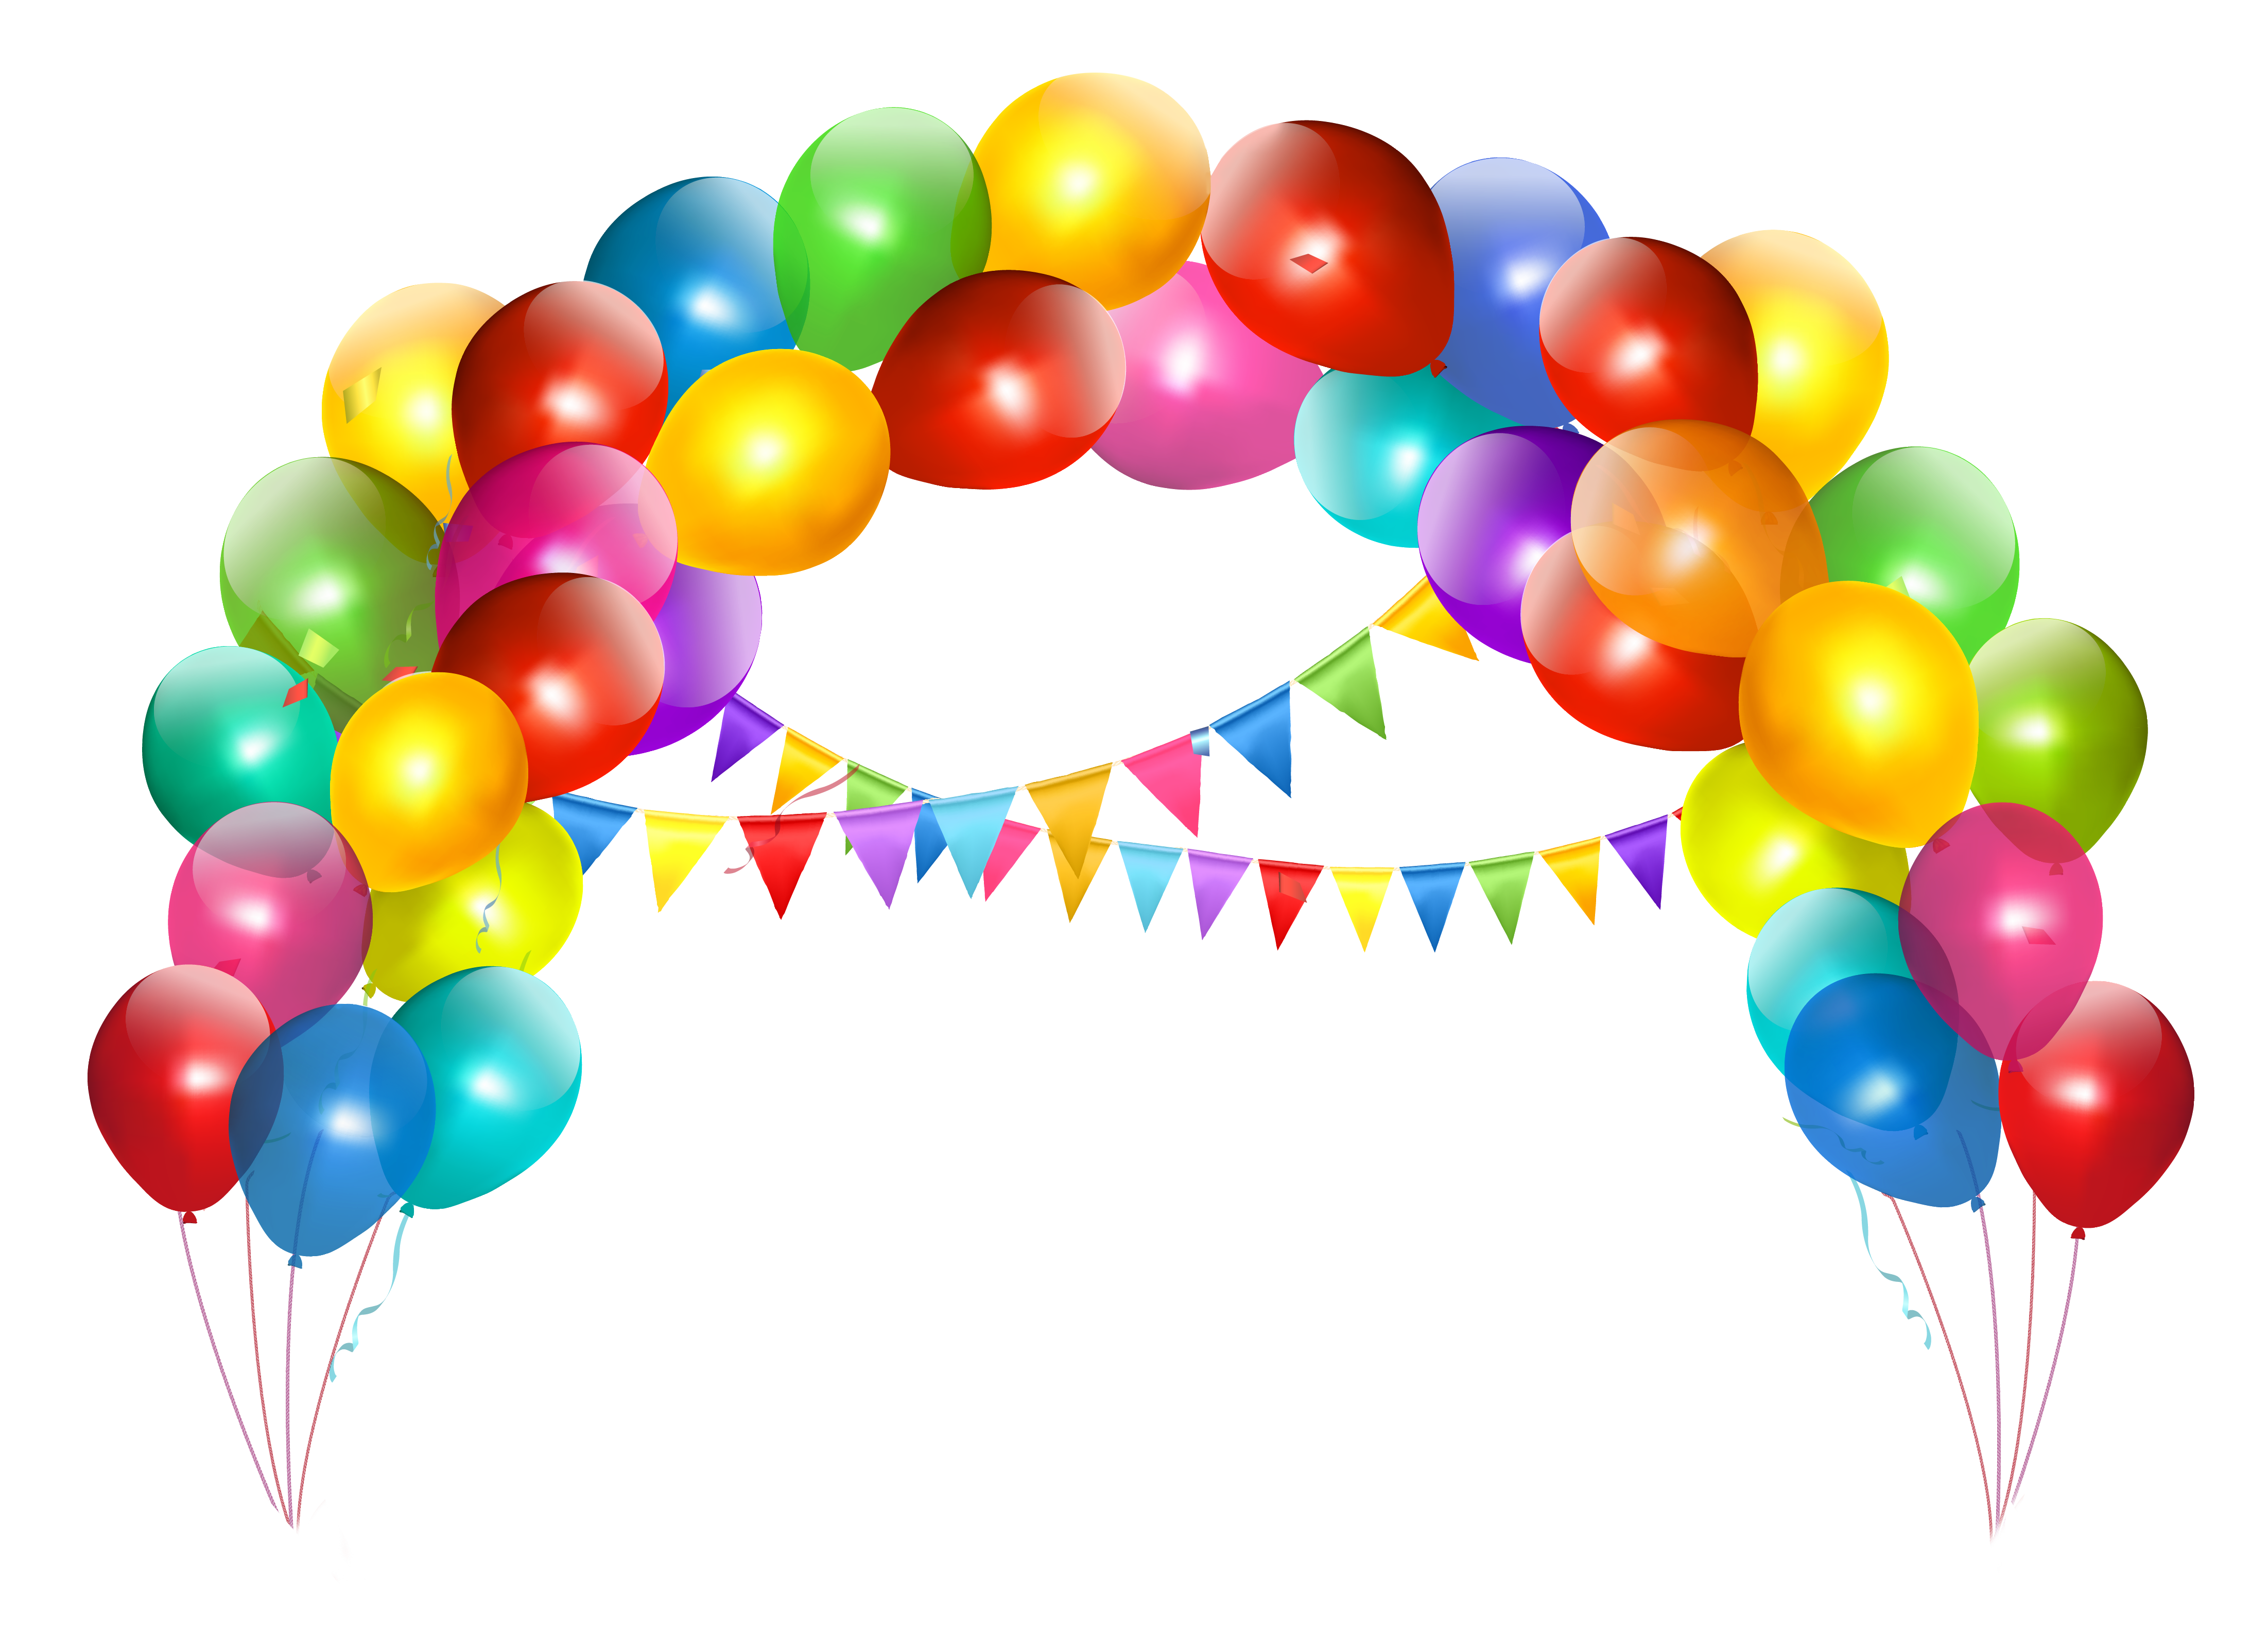 Free Free Balloon Images, Download Free Clip Art, Free Clip.